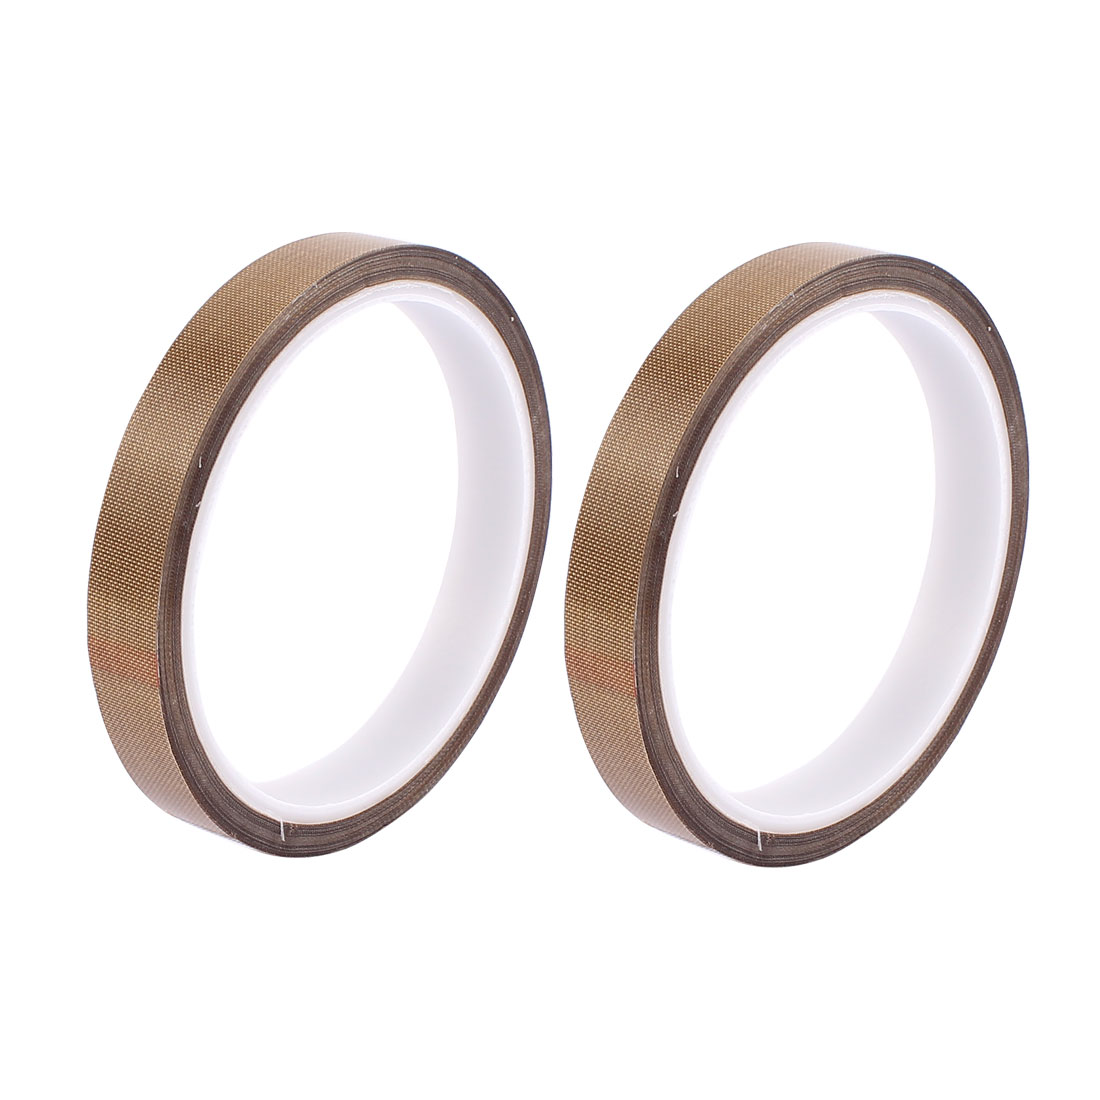 2pcs 0.13mm x 15mm Nonstick High Temperature PTFE Adhesive Tape 10M Long